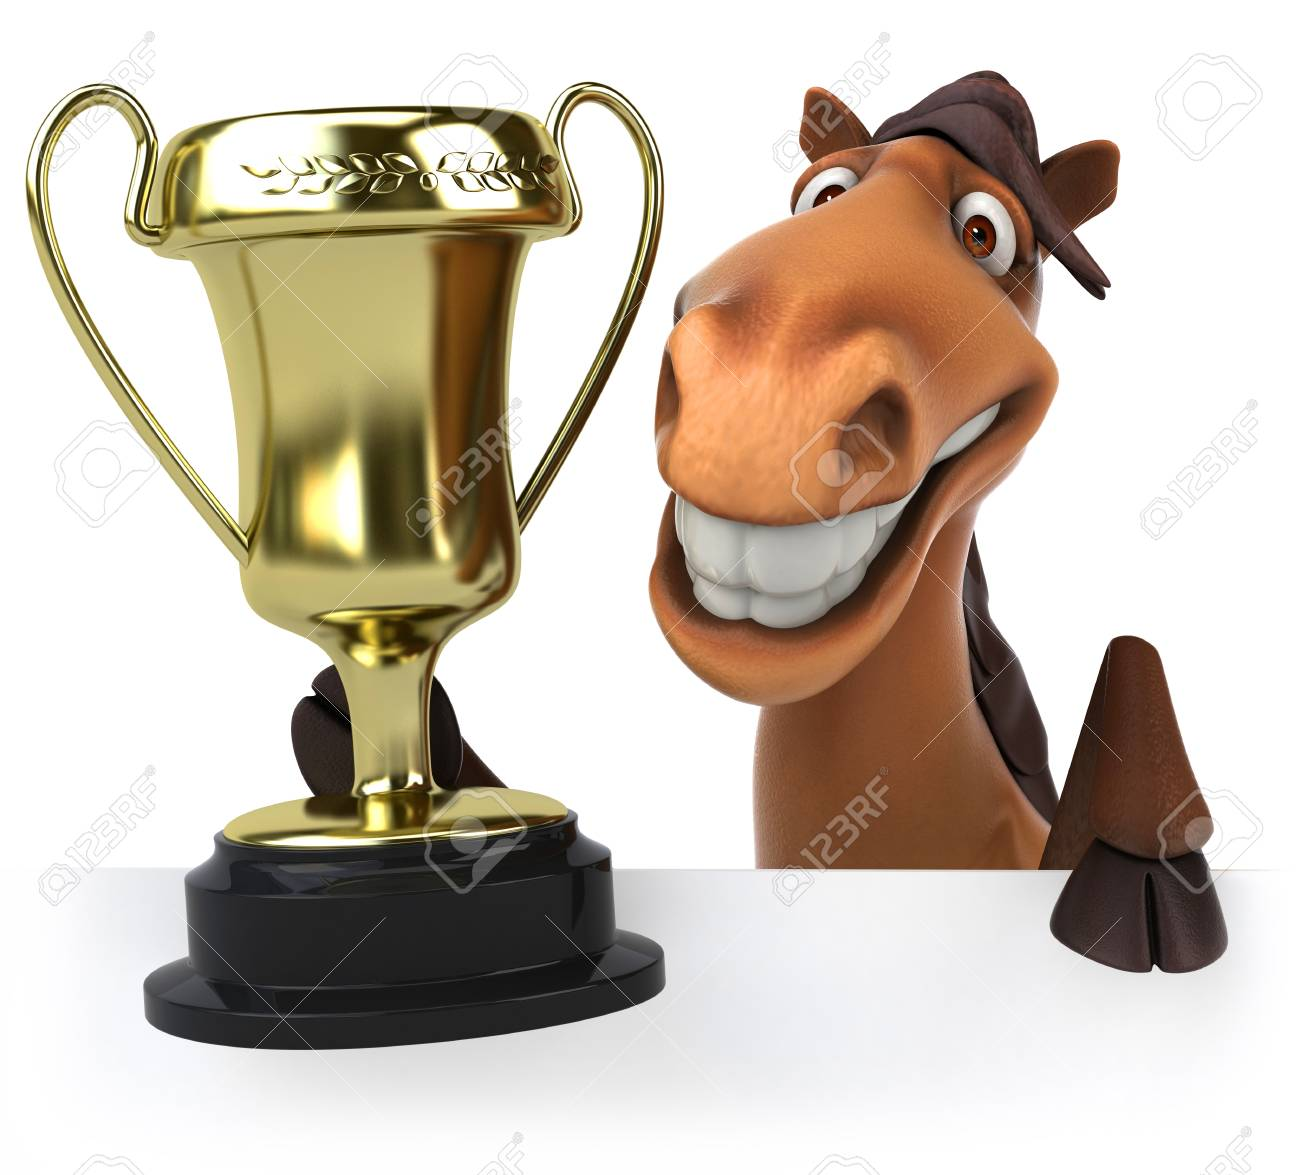 Cartoon Horse With Trophy Stock Photo Picture And Royalty Free Image Image 79721638